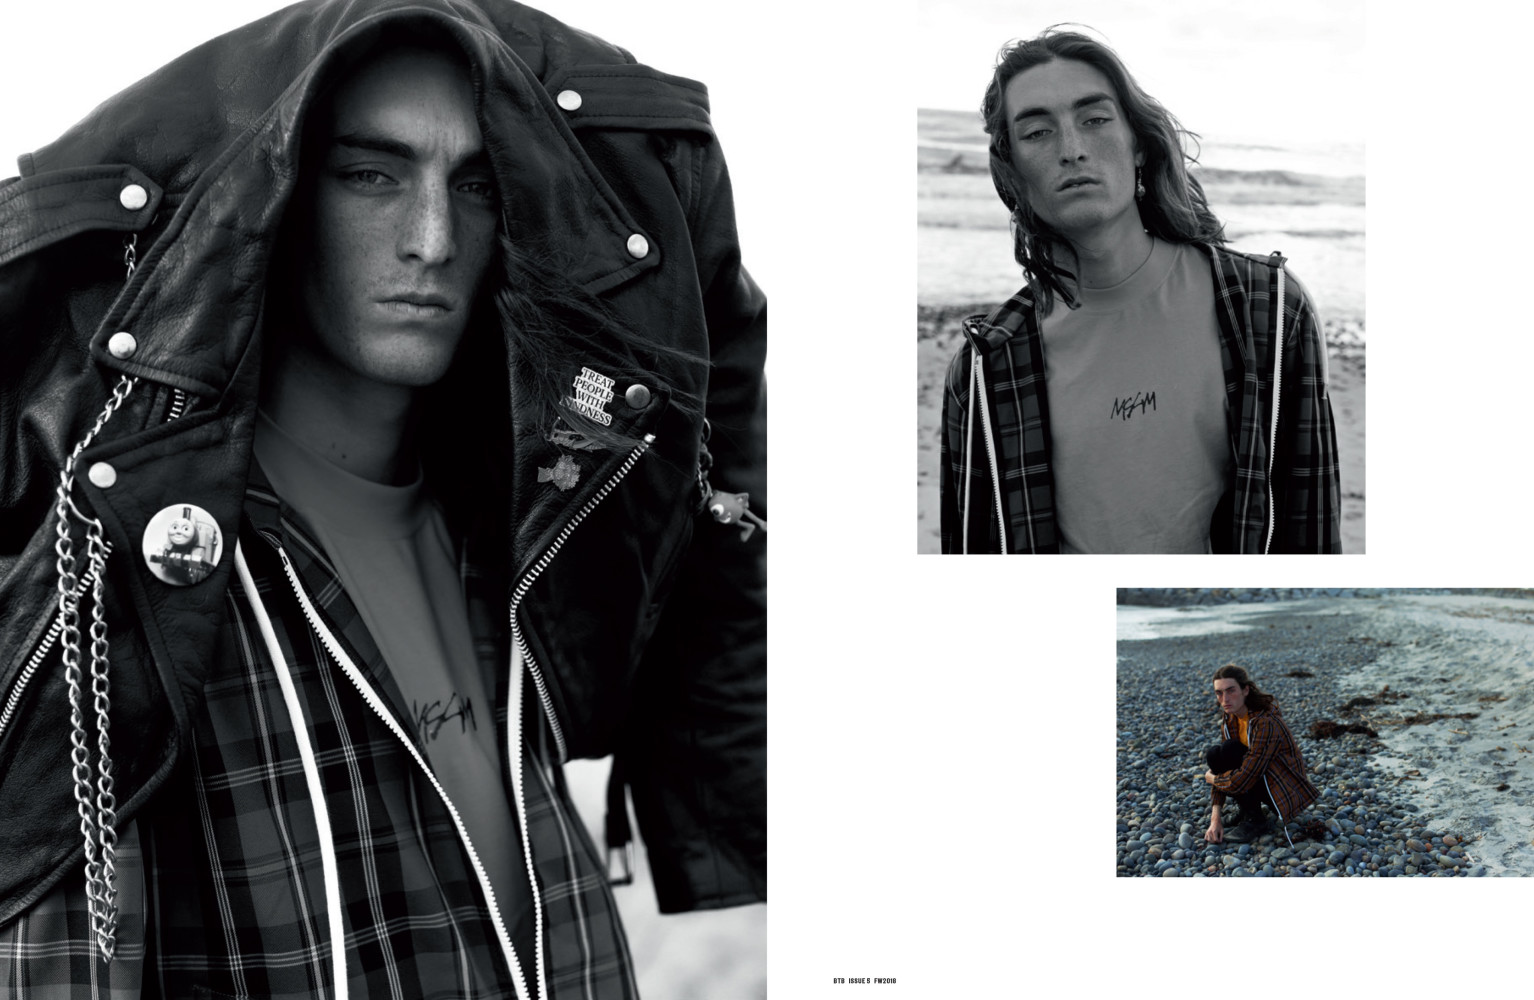 Niko Traubman for Behind The Blinds 5